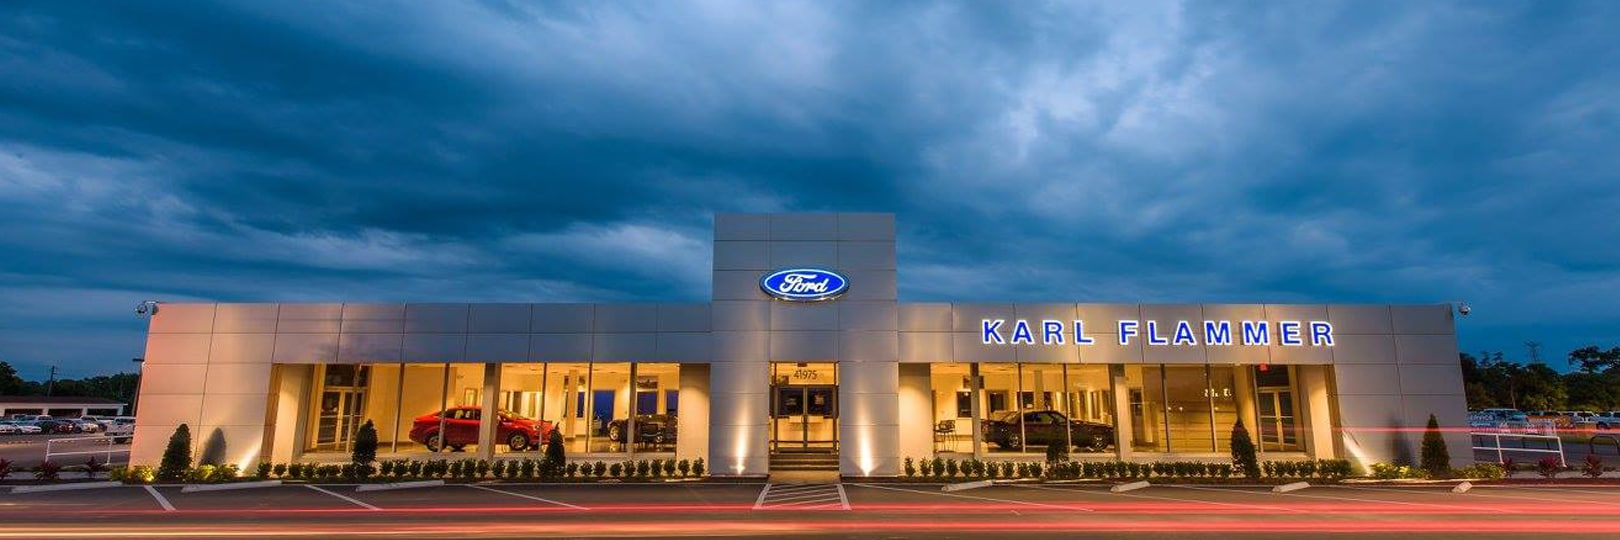 Karl Flammer Ford >> Karl Flammer Ford | Ford Sales & Service in Tarpon Springs, FL